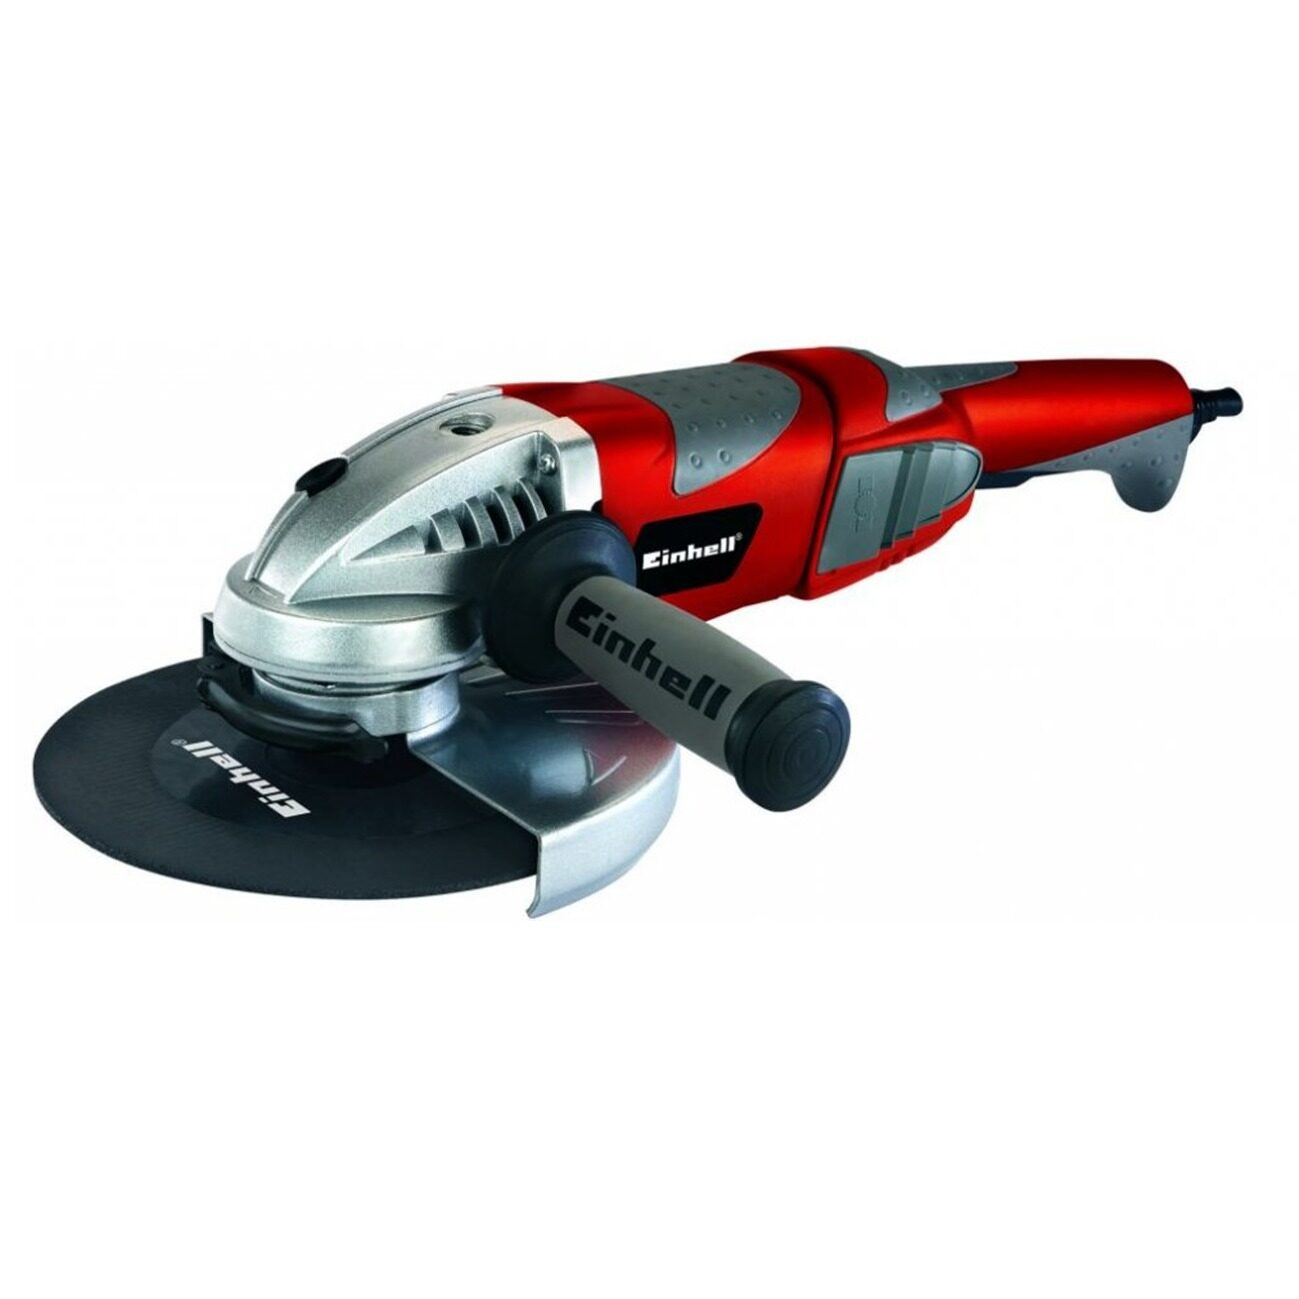 Einhell RT-AG 230 Angle Grinder (Red)